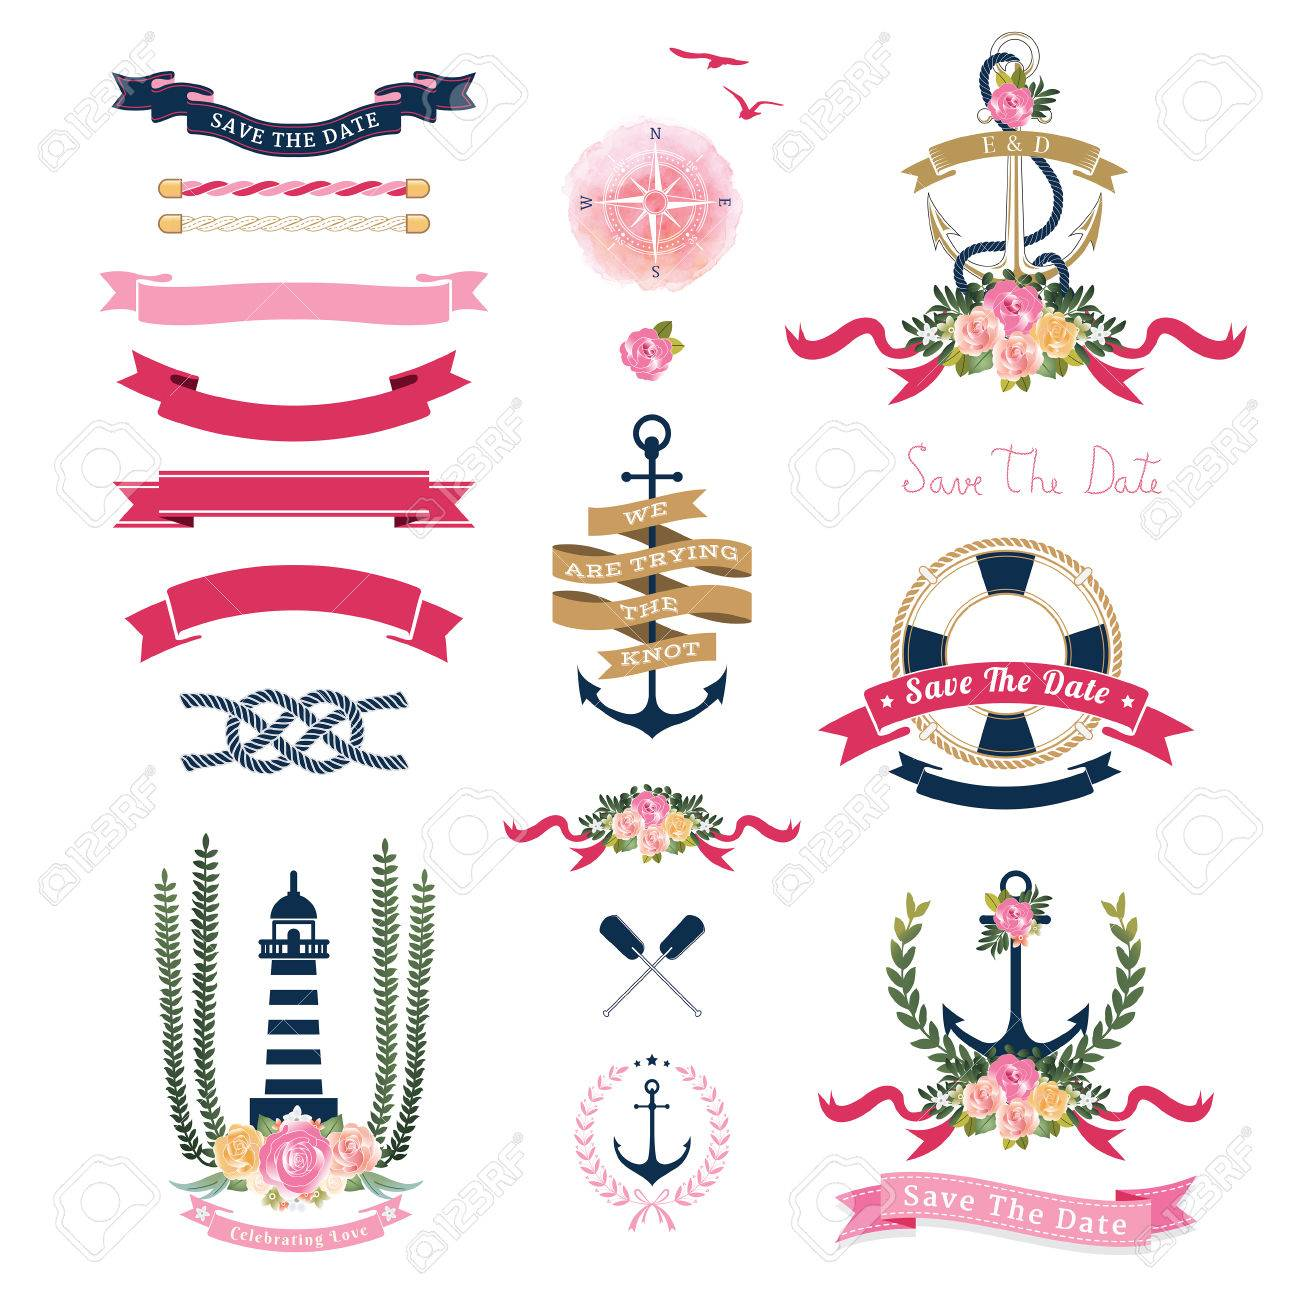 Nautical Wedding Theme With Floral And Anchor Ornaments On White Background Stock Vector